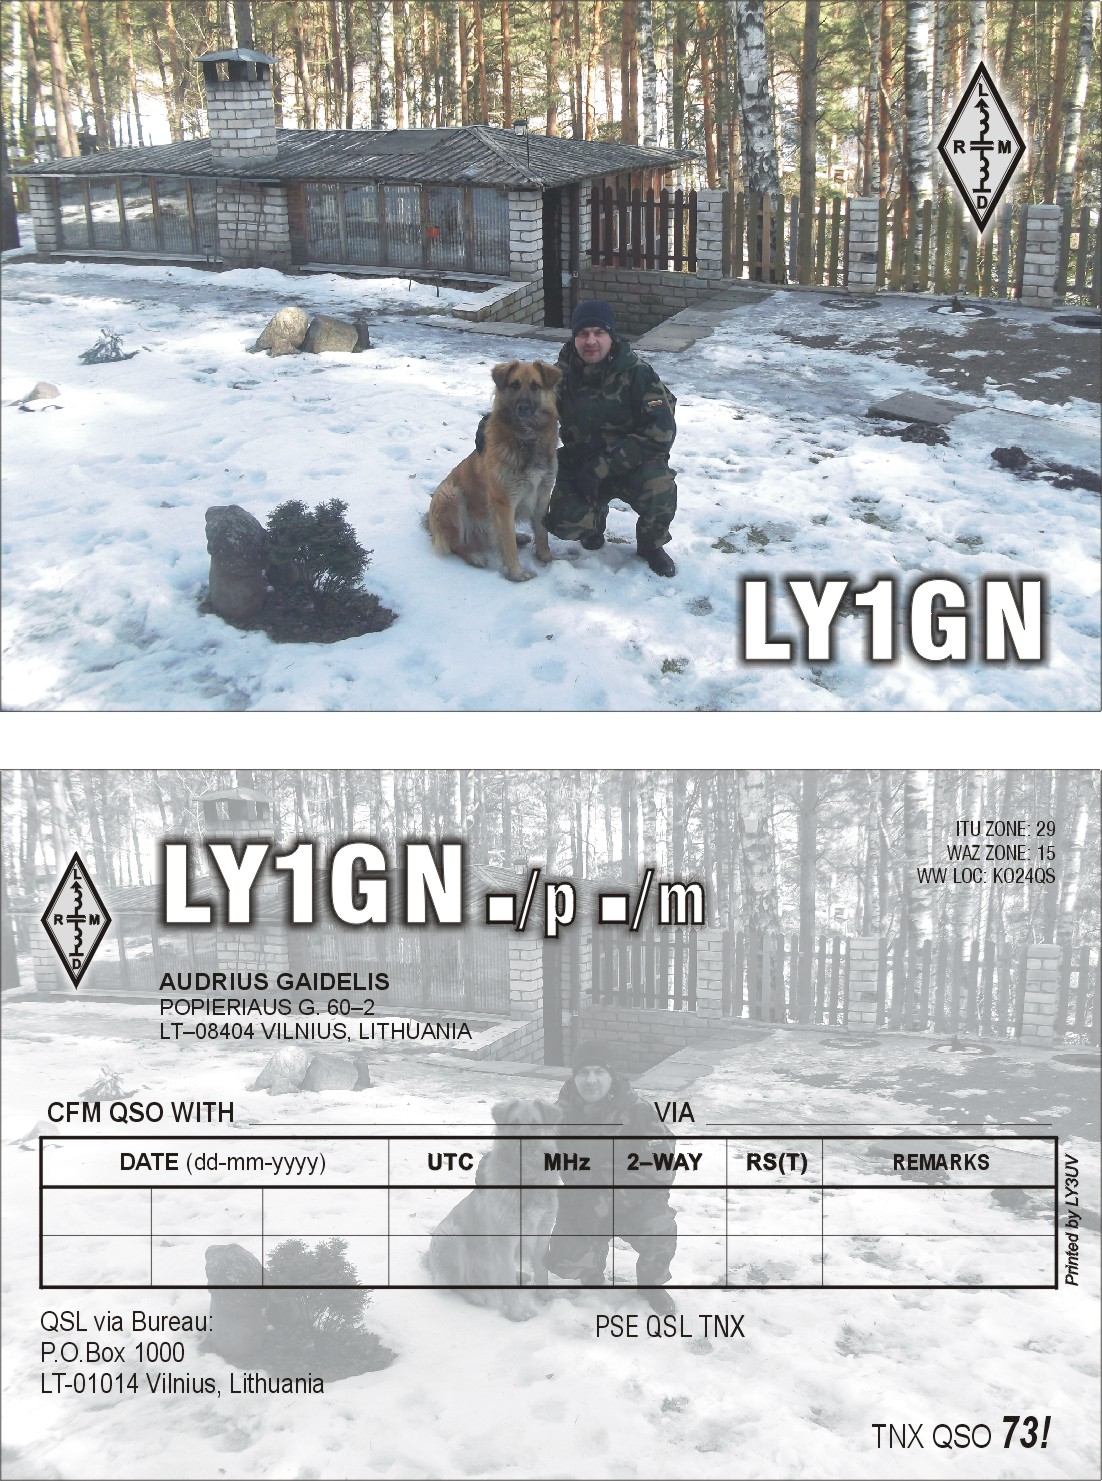 QSL image for LY1GN